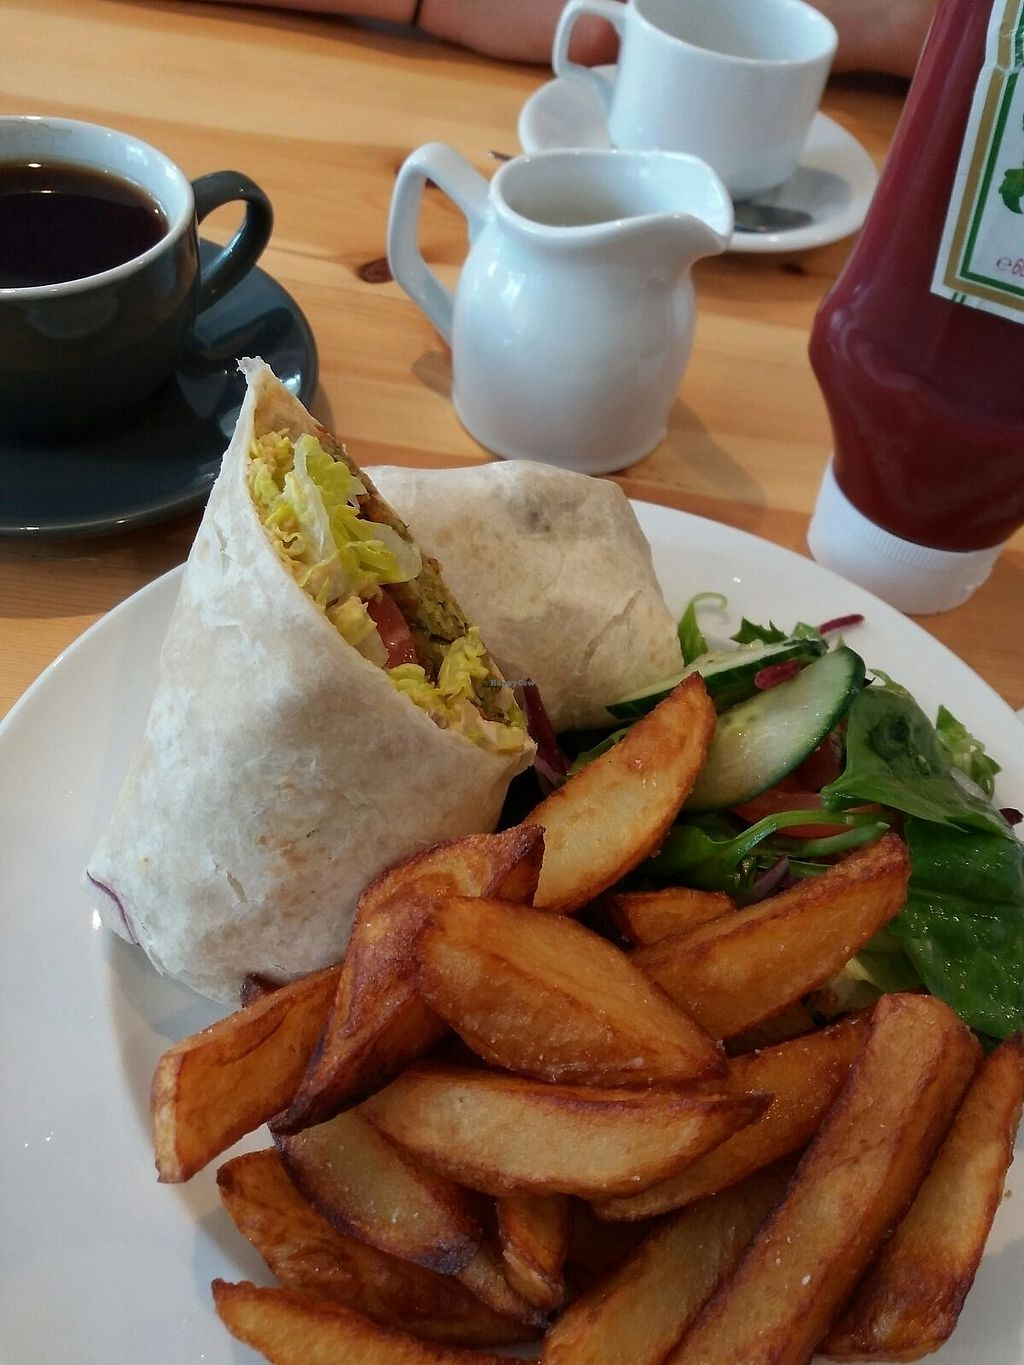 """Photo of The Willow Tree Cafe  by <a href=""""/members/profile/sgacton"""">sgacton</a> <br/>Falafel wrap with chunky chips <br/> August 15, 2017  - <a href='/contact/abuse/image/97937/293027'>Report</a>"""